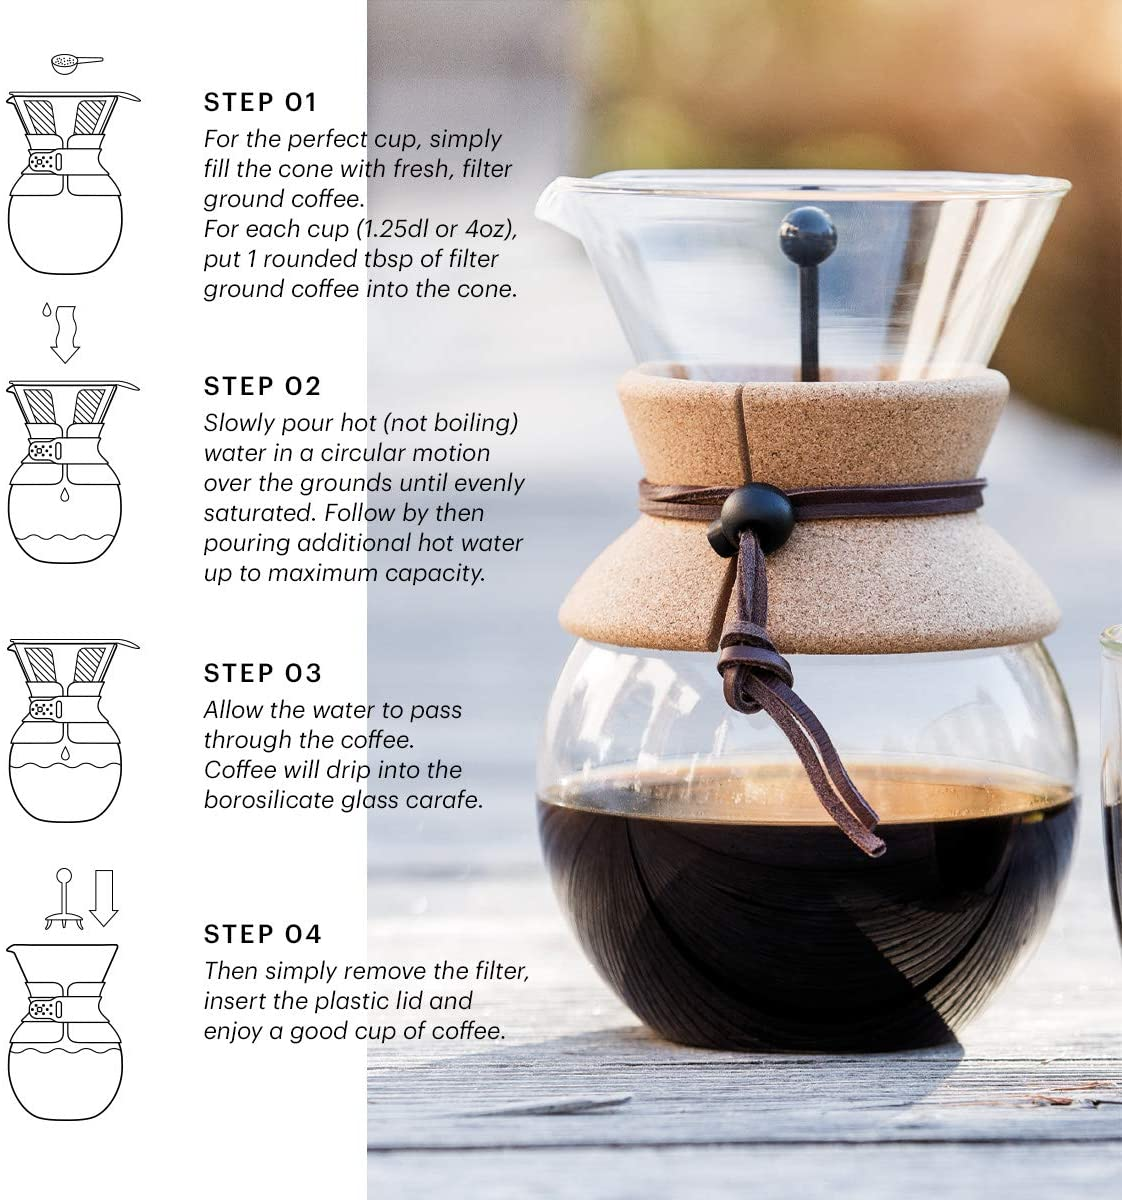 Best Pour-Over Coffee Makers in 2020: Reviews & Buying Guide 17